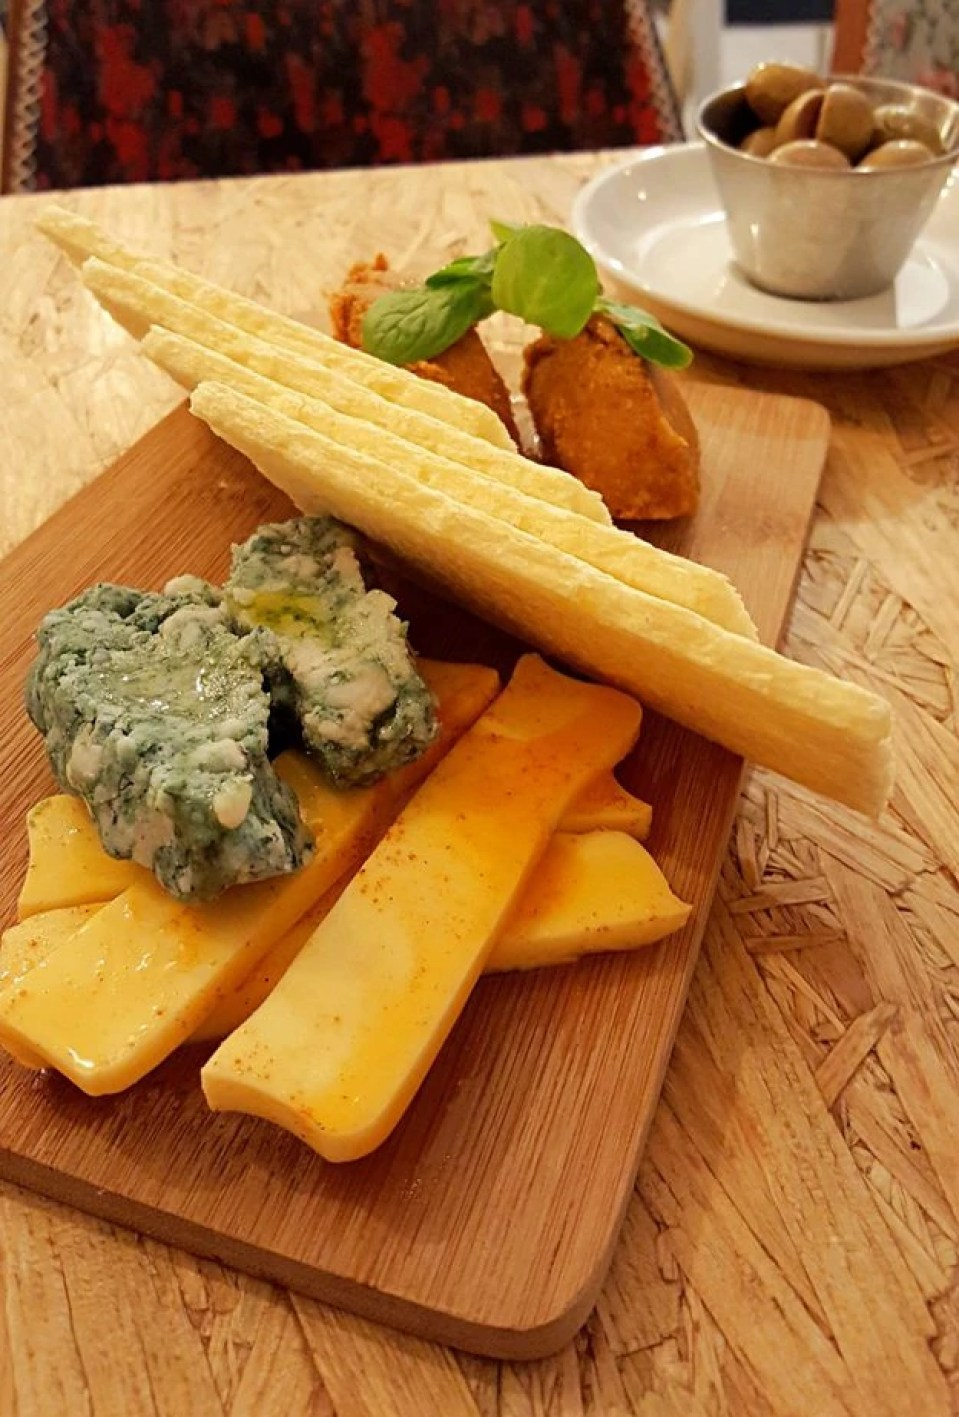 vegan cheese plate nicpic in Malaga Spain